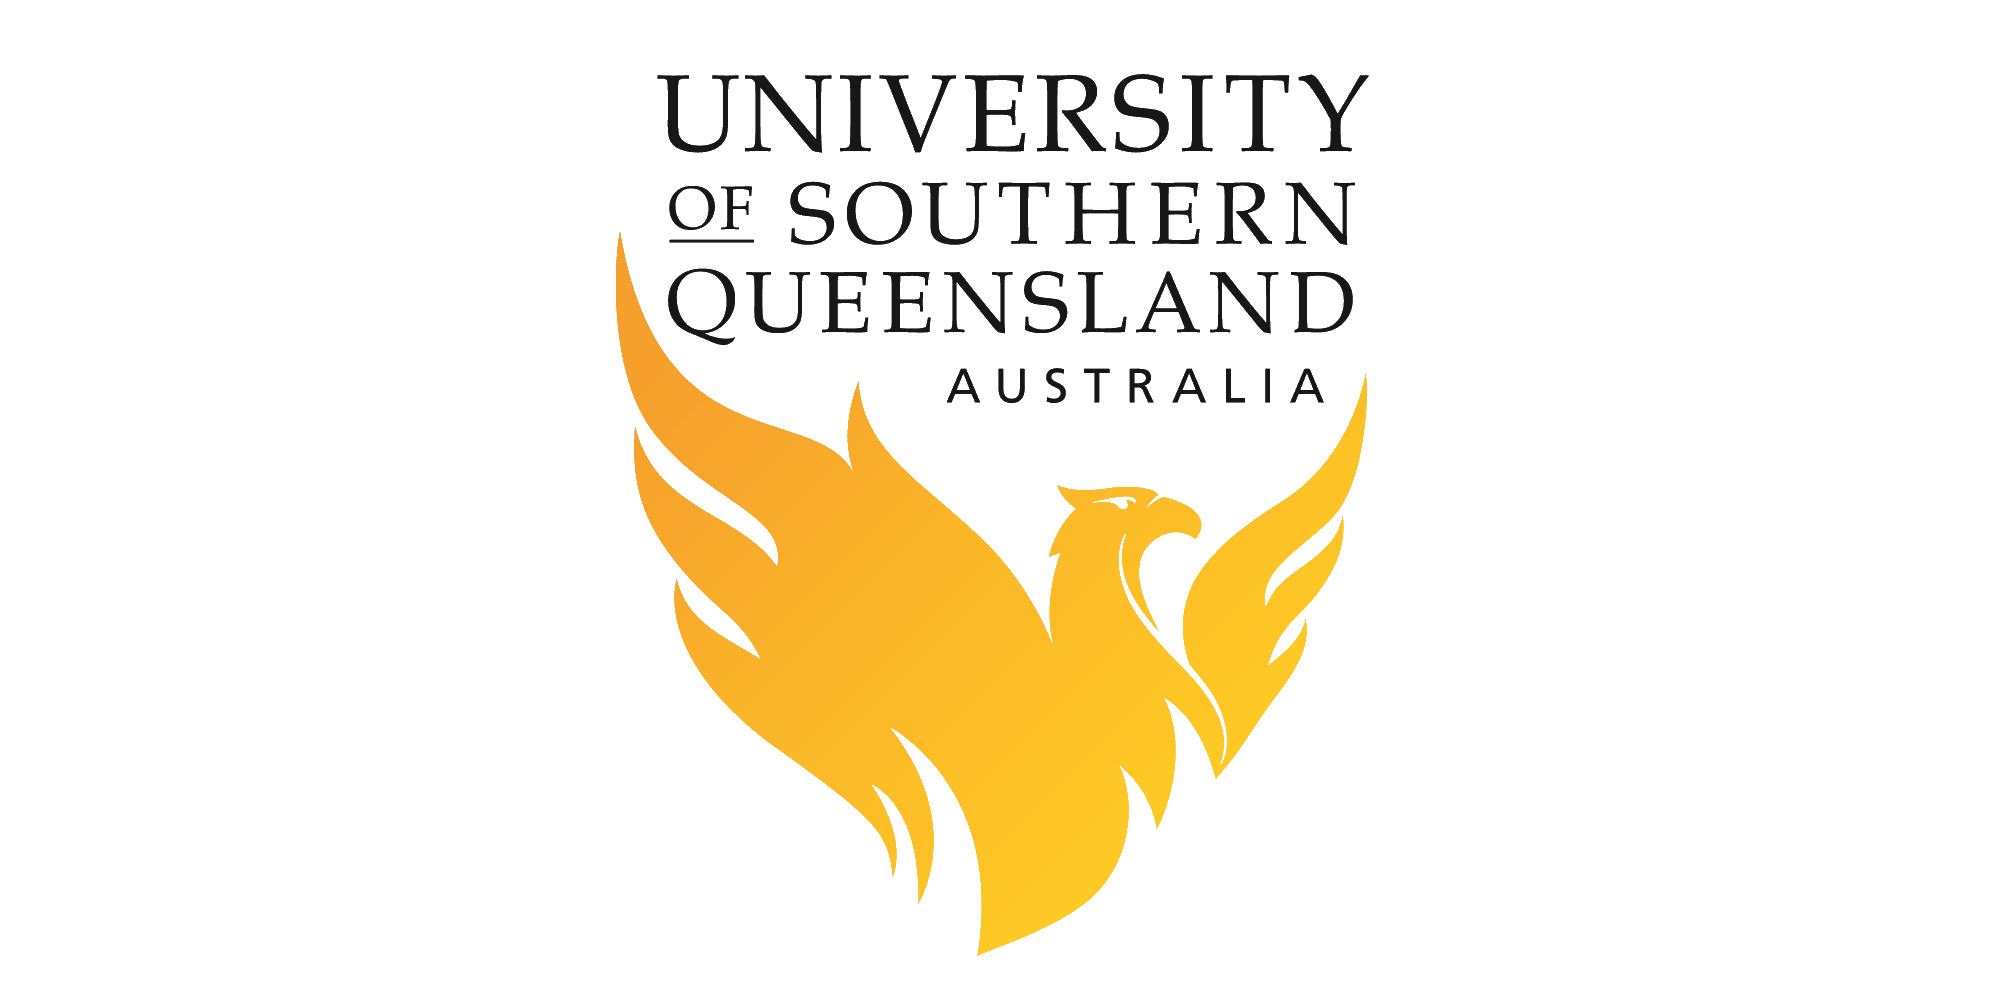 Student accommodation near University of Southern Queensland